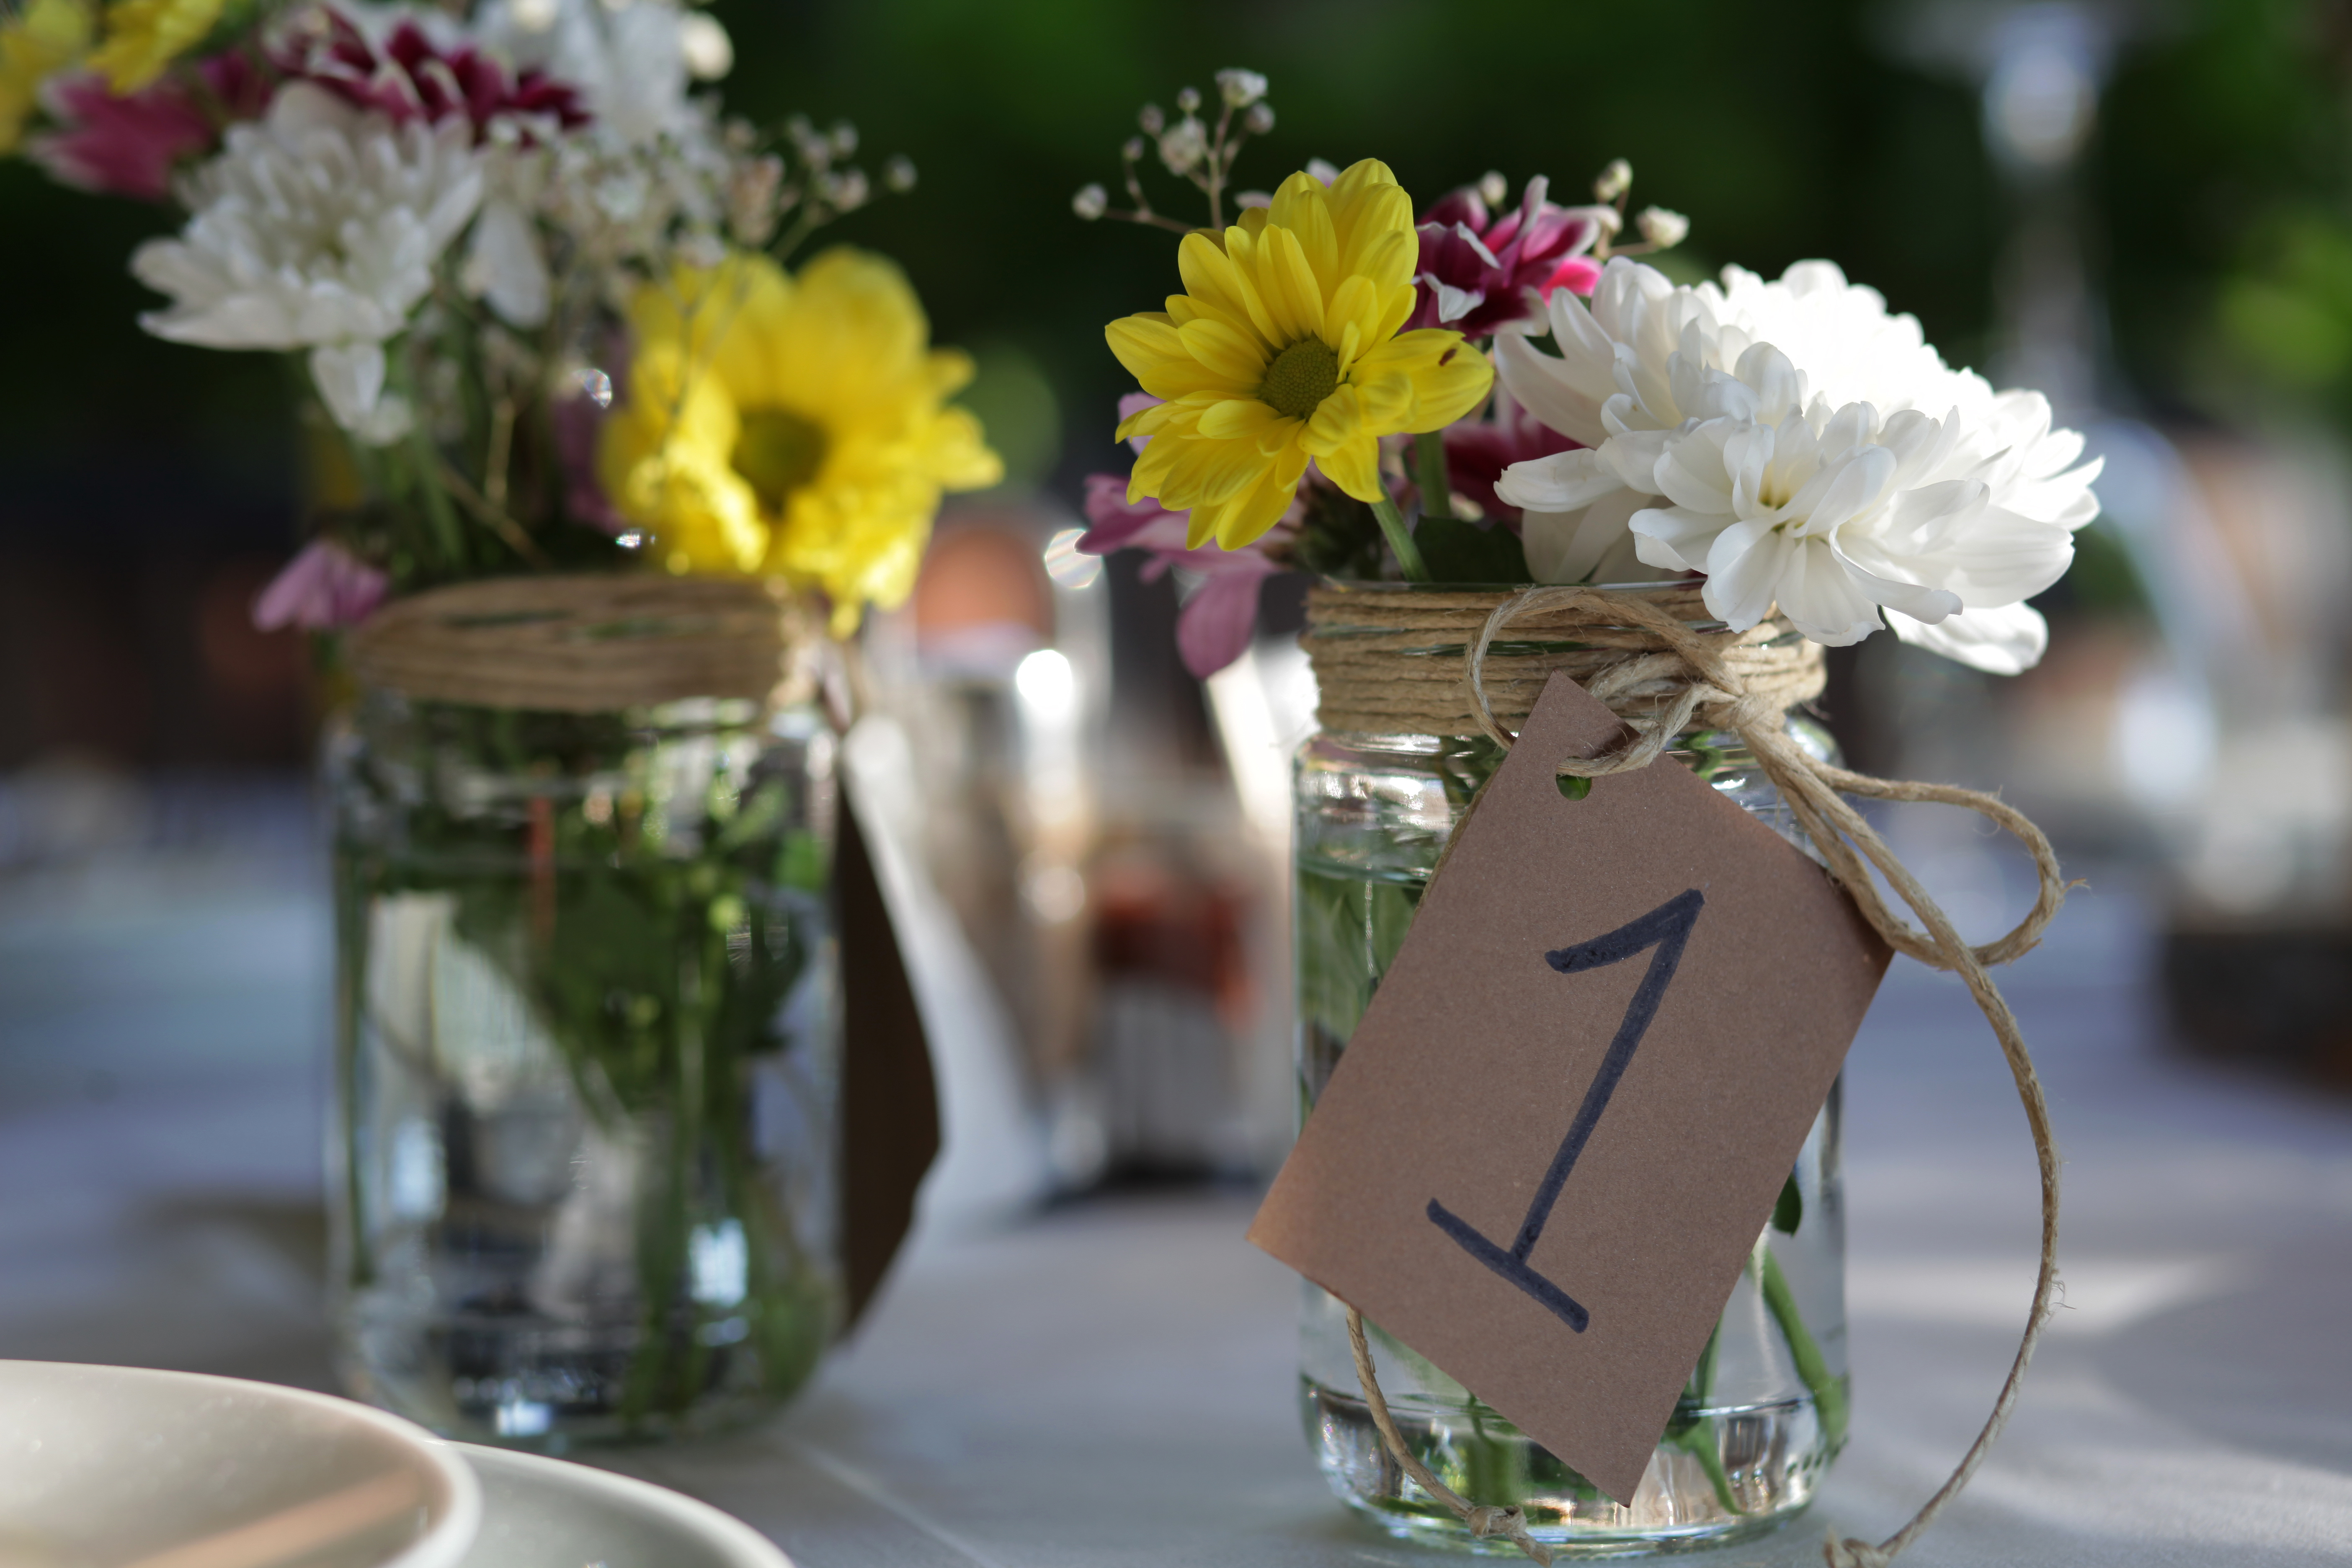 Floral decor in a jar on the table for the wedding ceremony